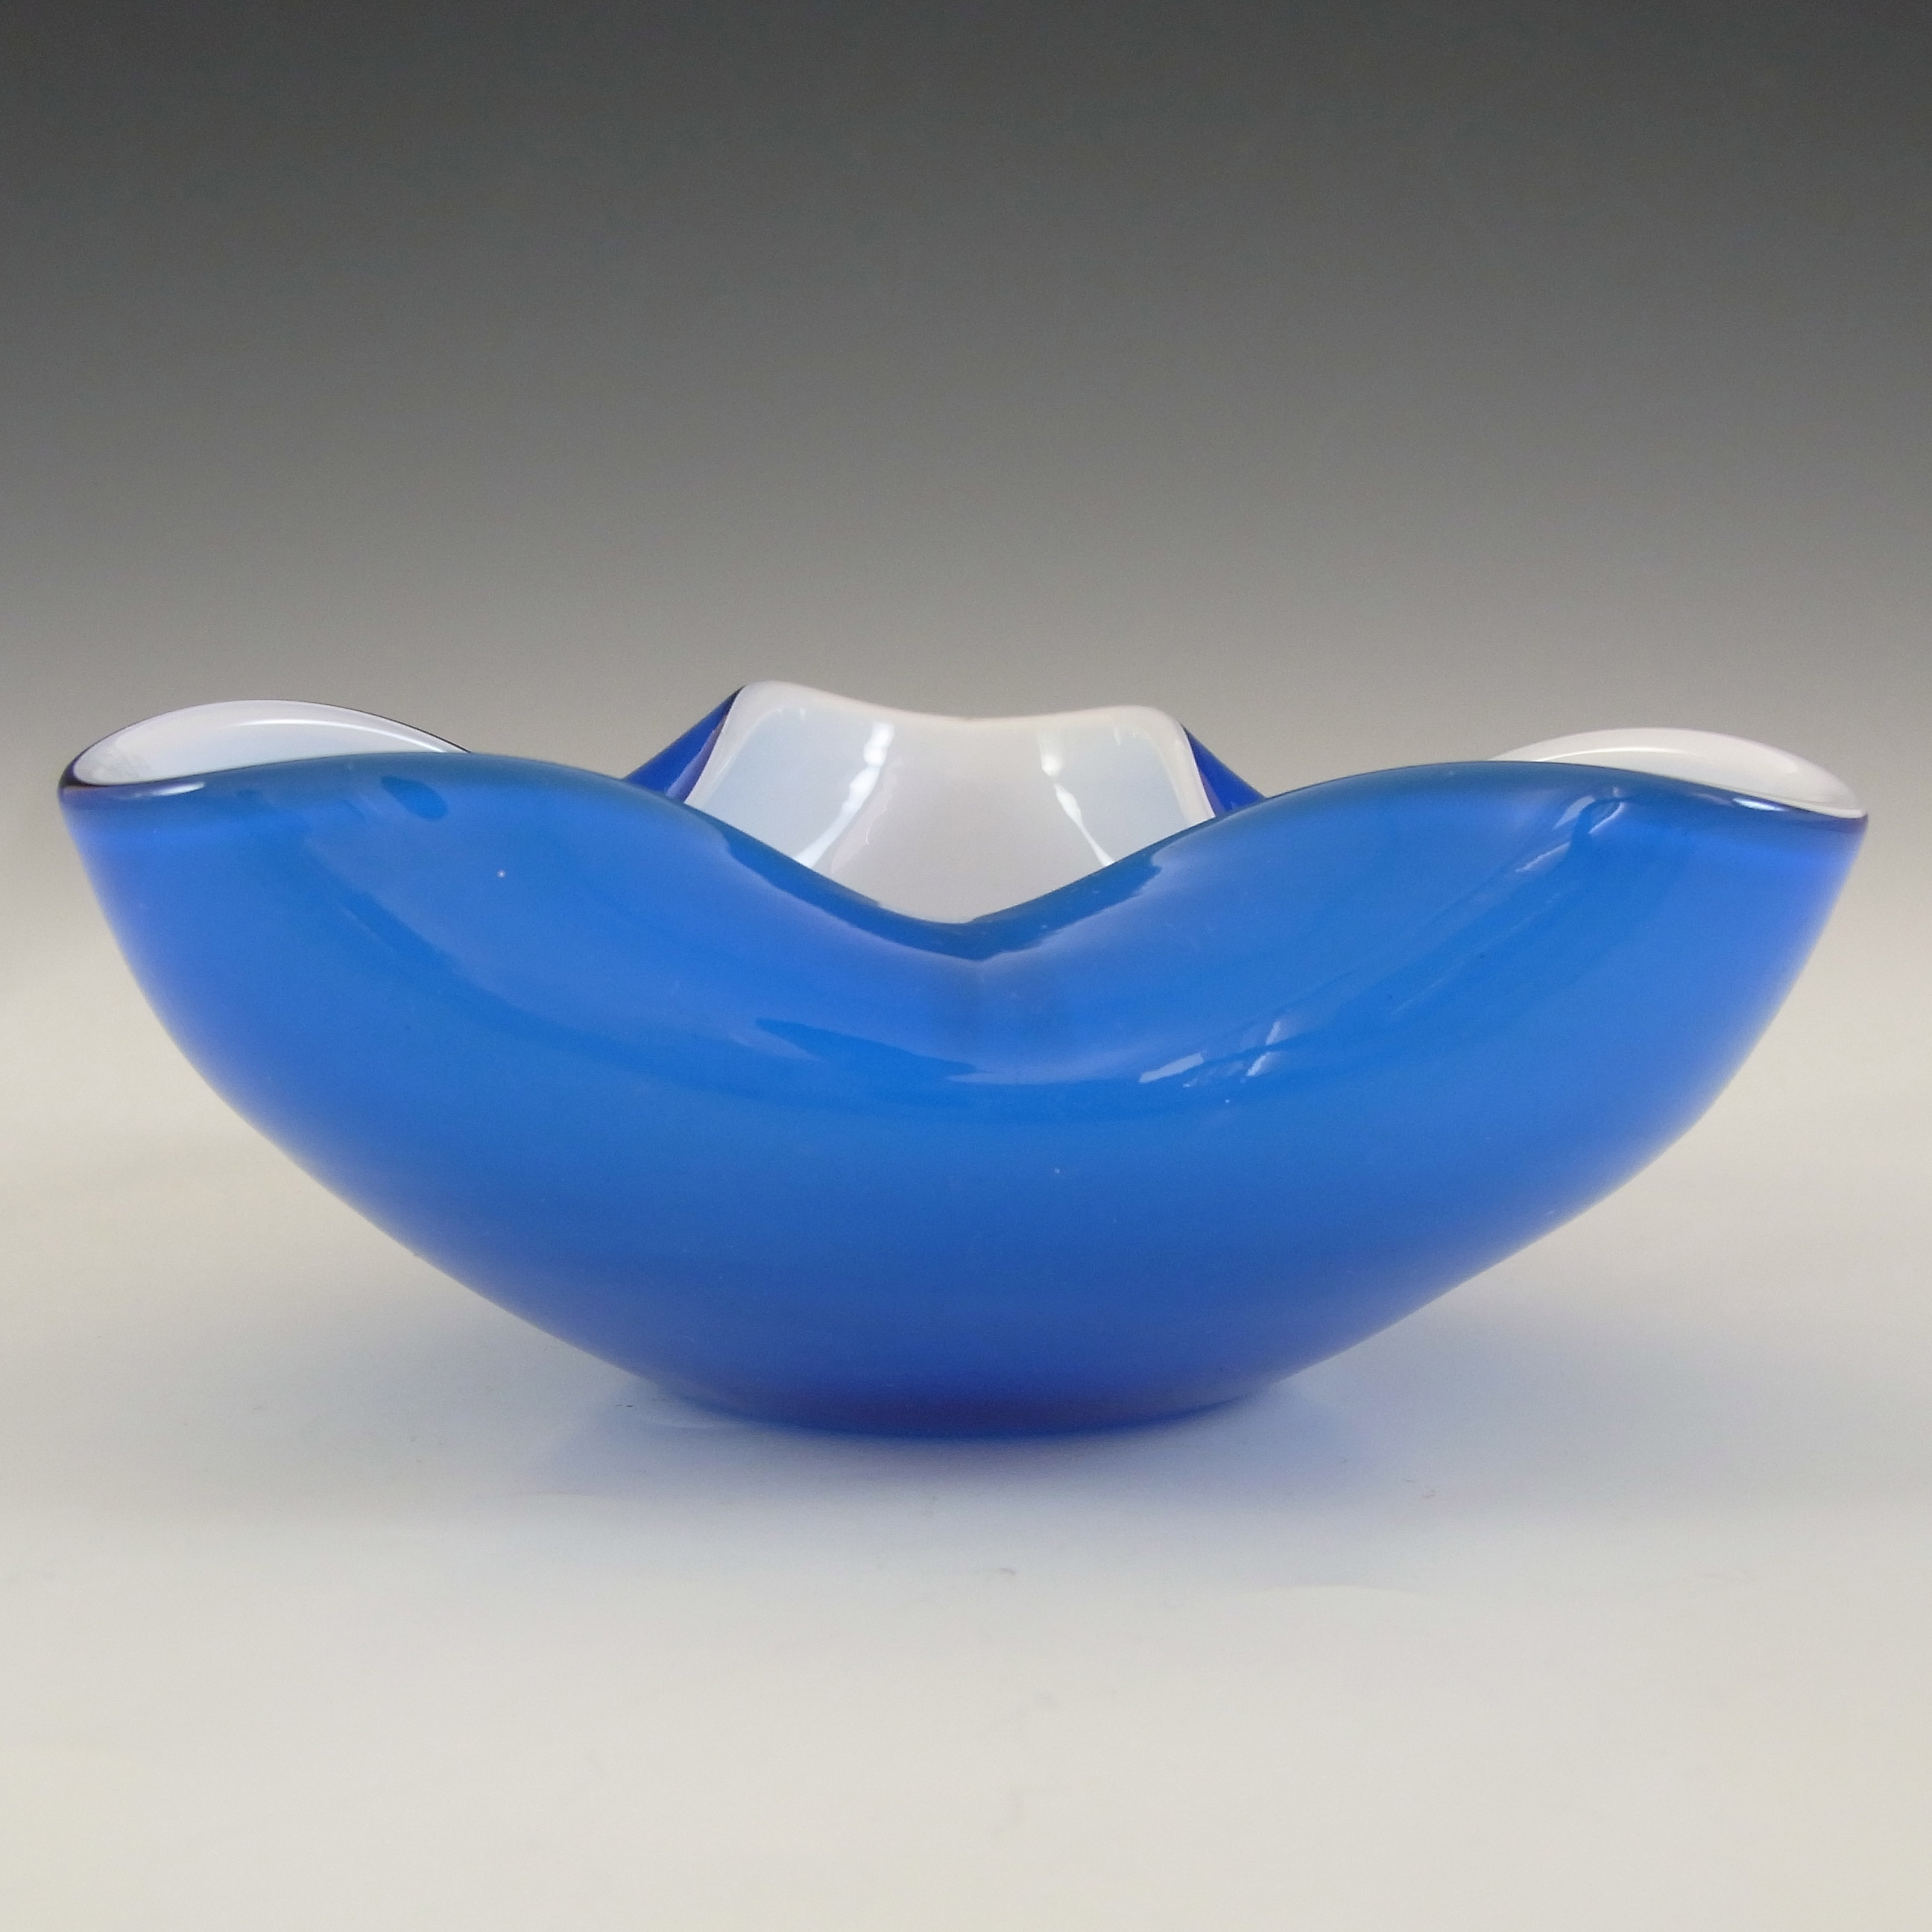 Japanese Blue & White Cased Glass 'Wales' Biomorphic Bowl - Click Image to Close